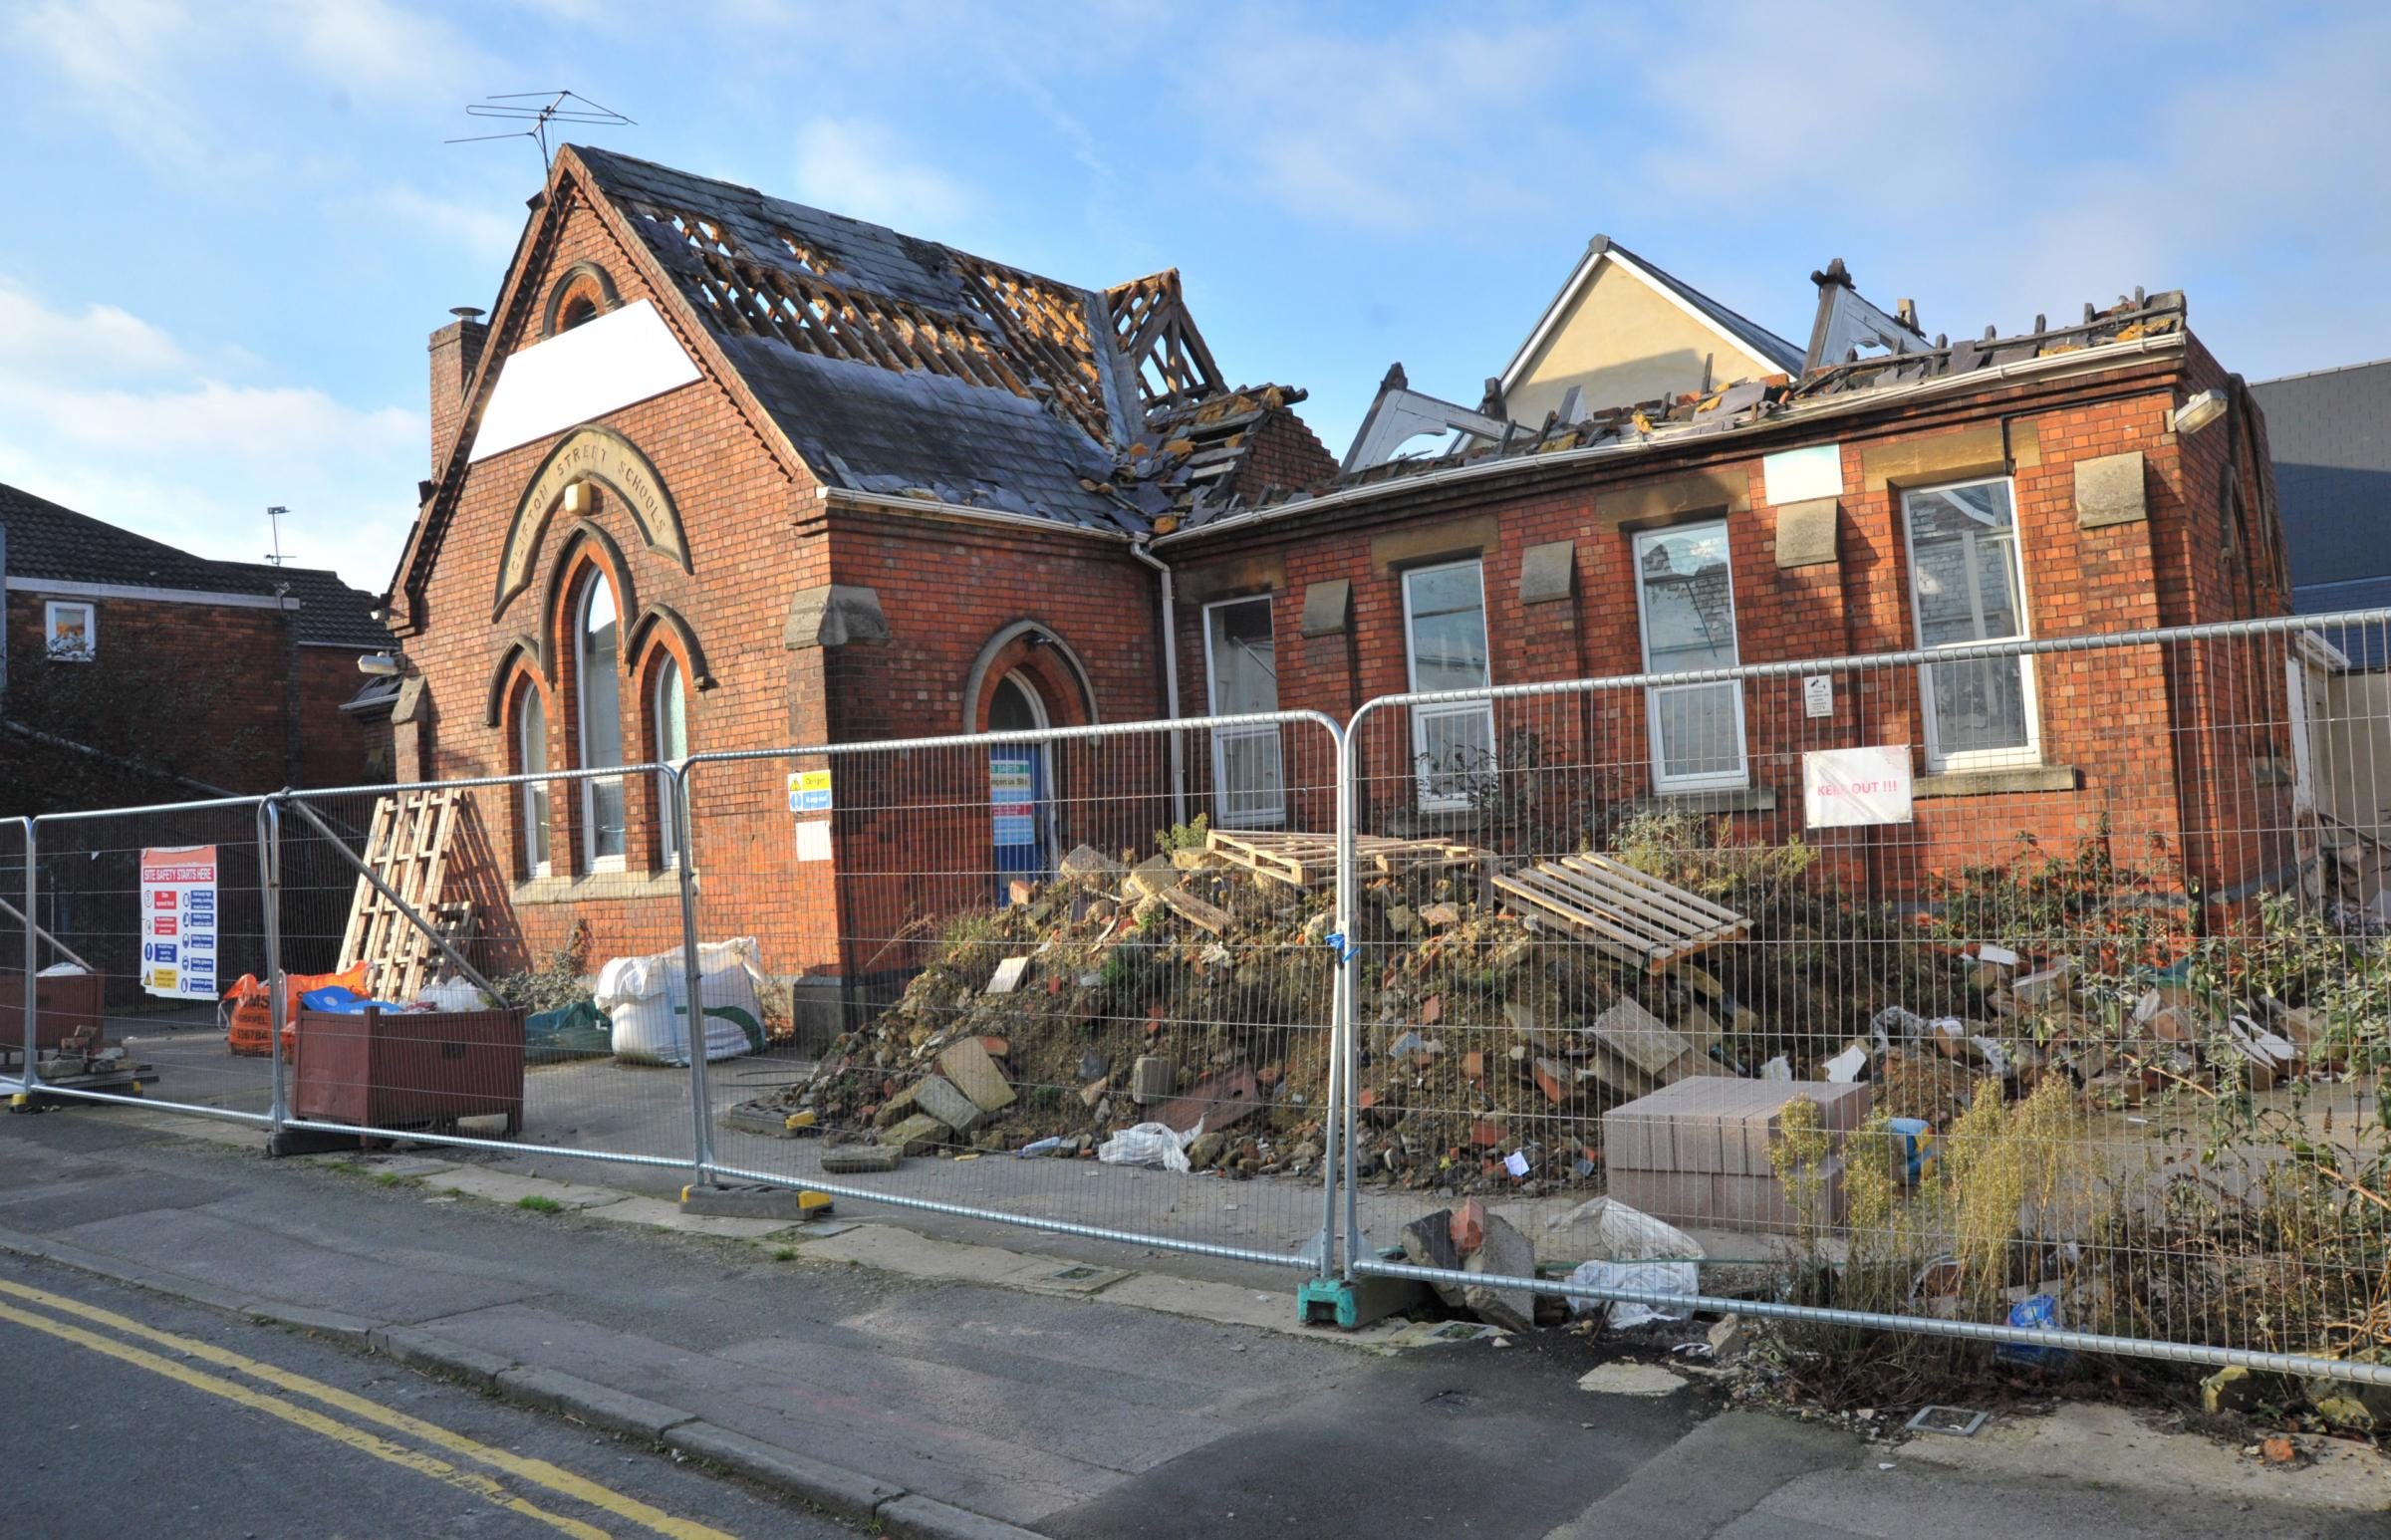 Clifton Street school is to be demolished this year..Pic - gv.Date 4/1/18.Pic By Dave Cox.